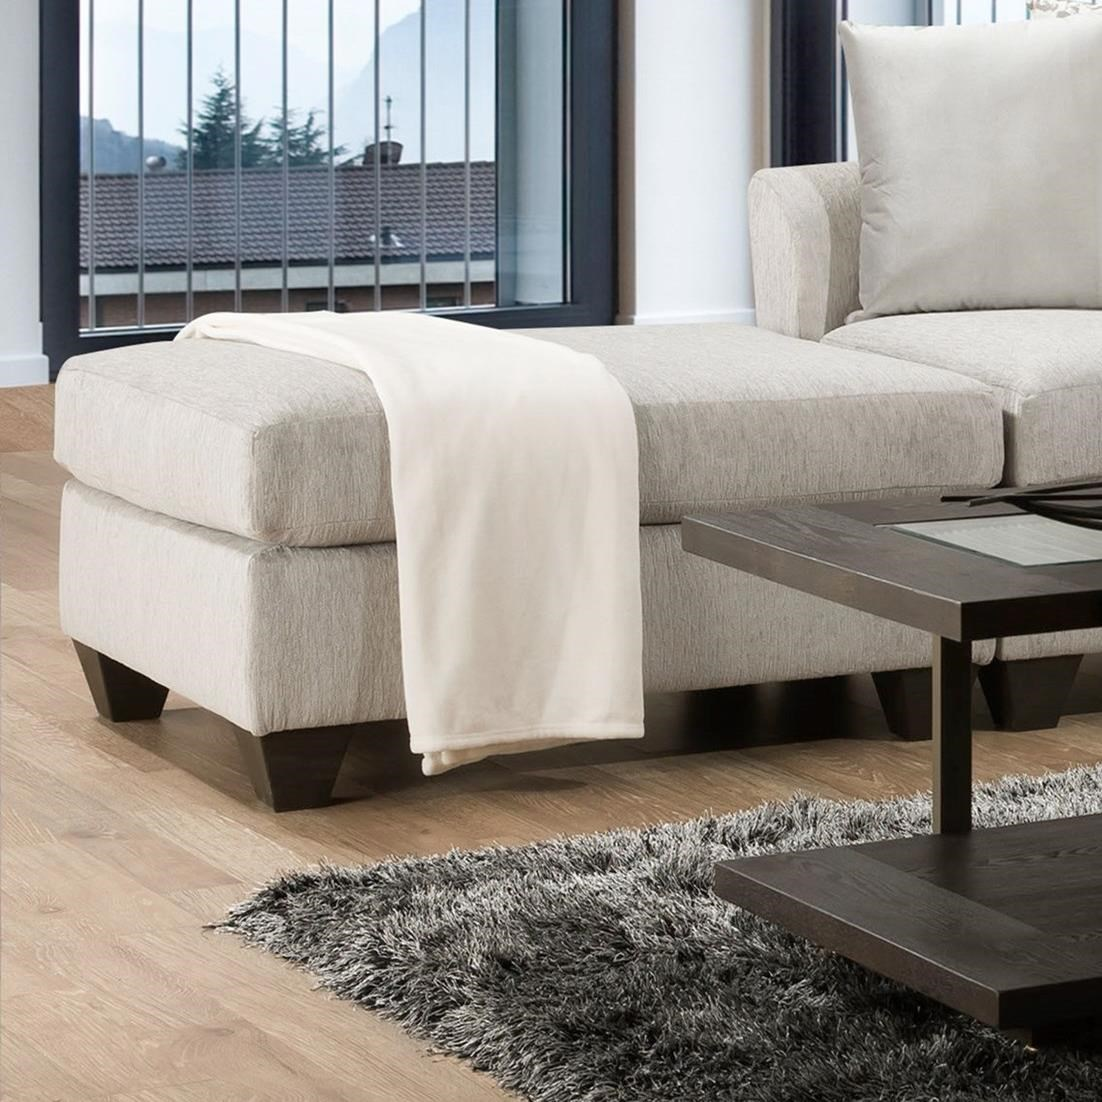 1380 Ottoman by Peak Living at Prime Brothers Furniture